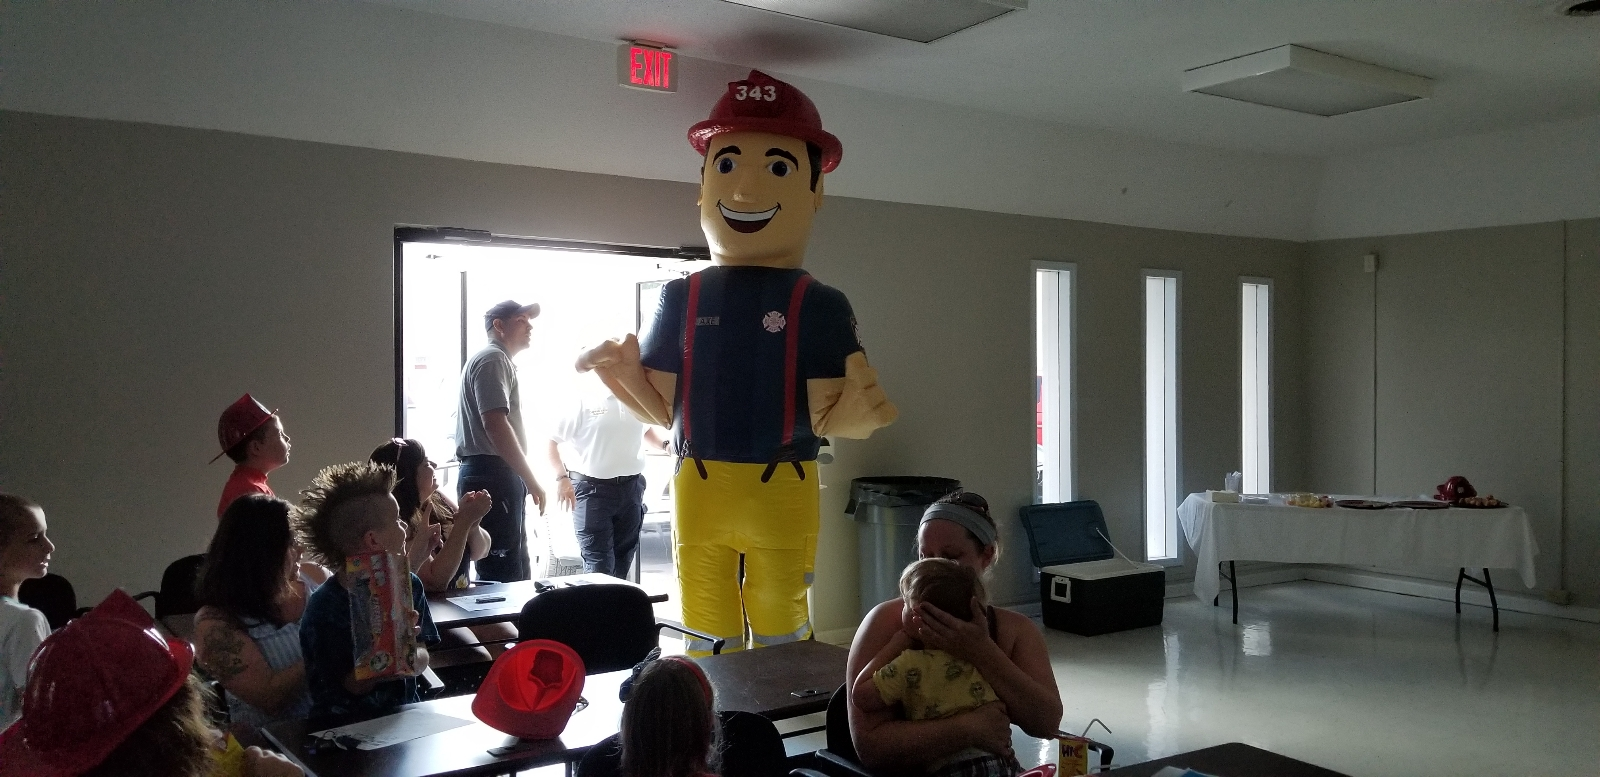 A fire department mascot stands amid a crowd of people